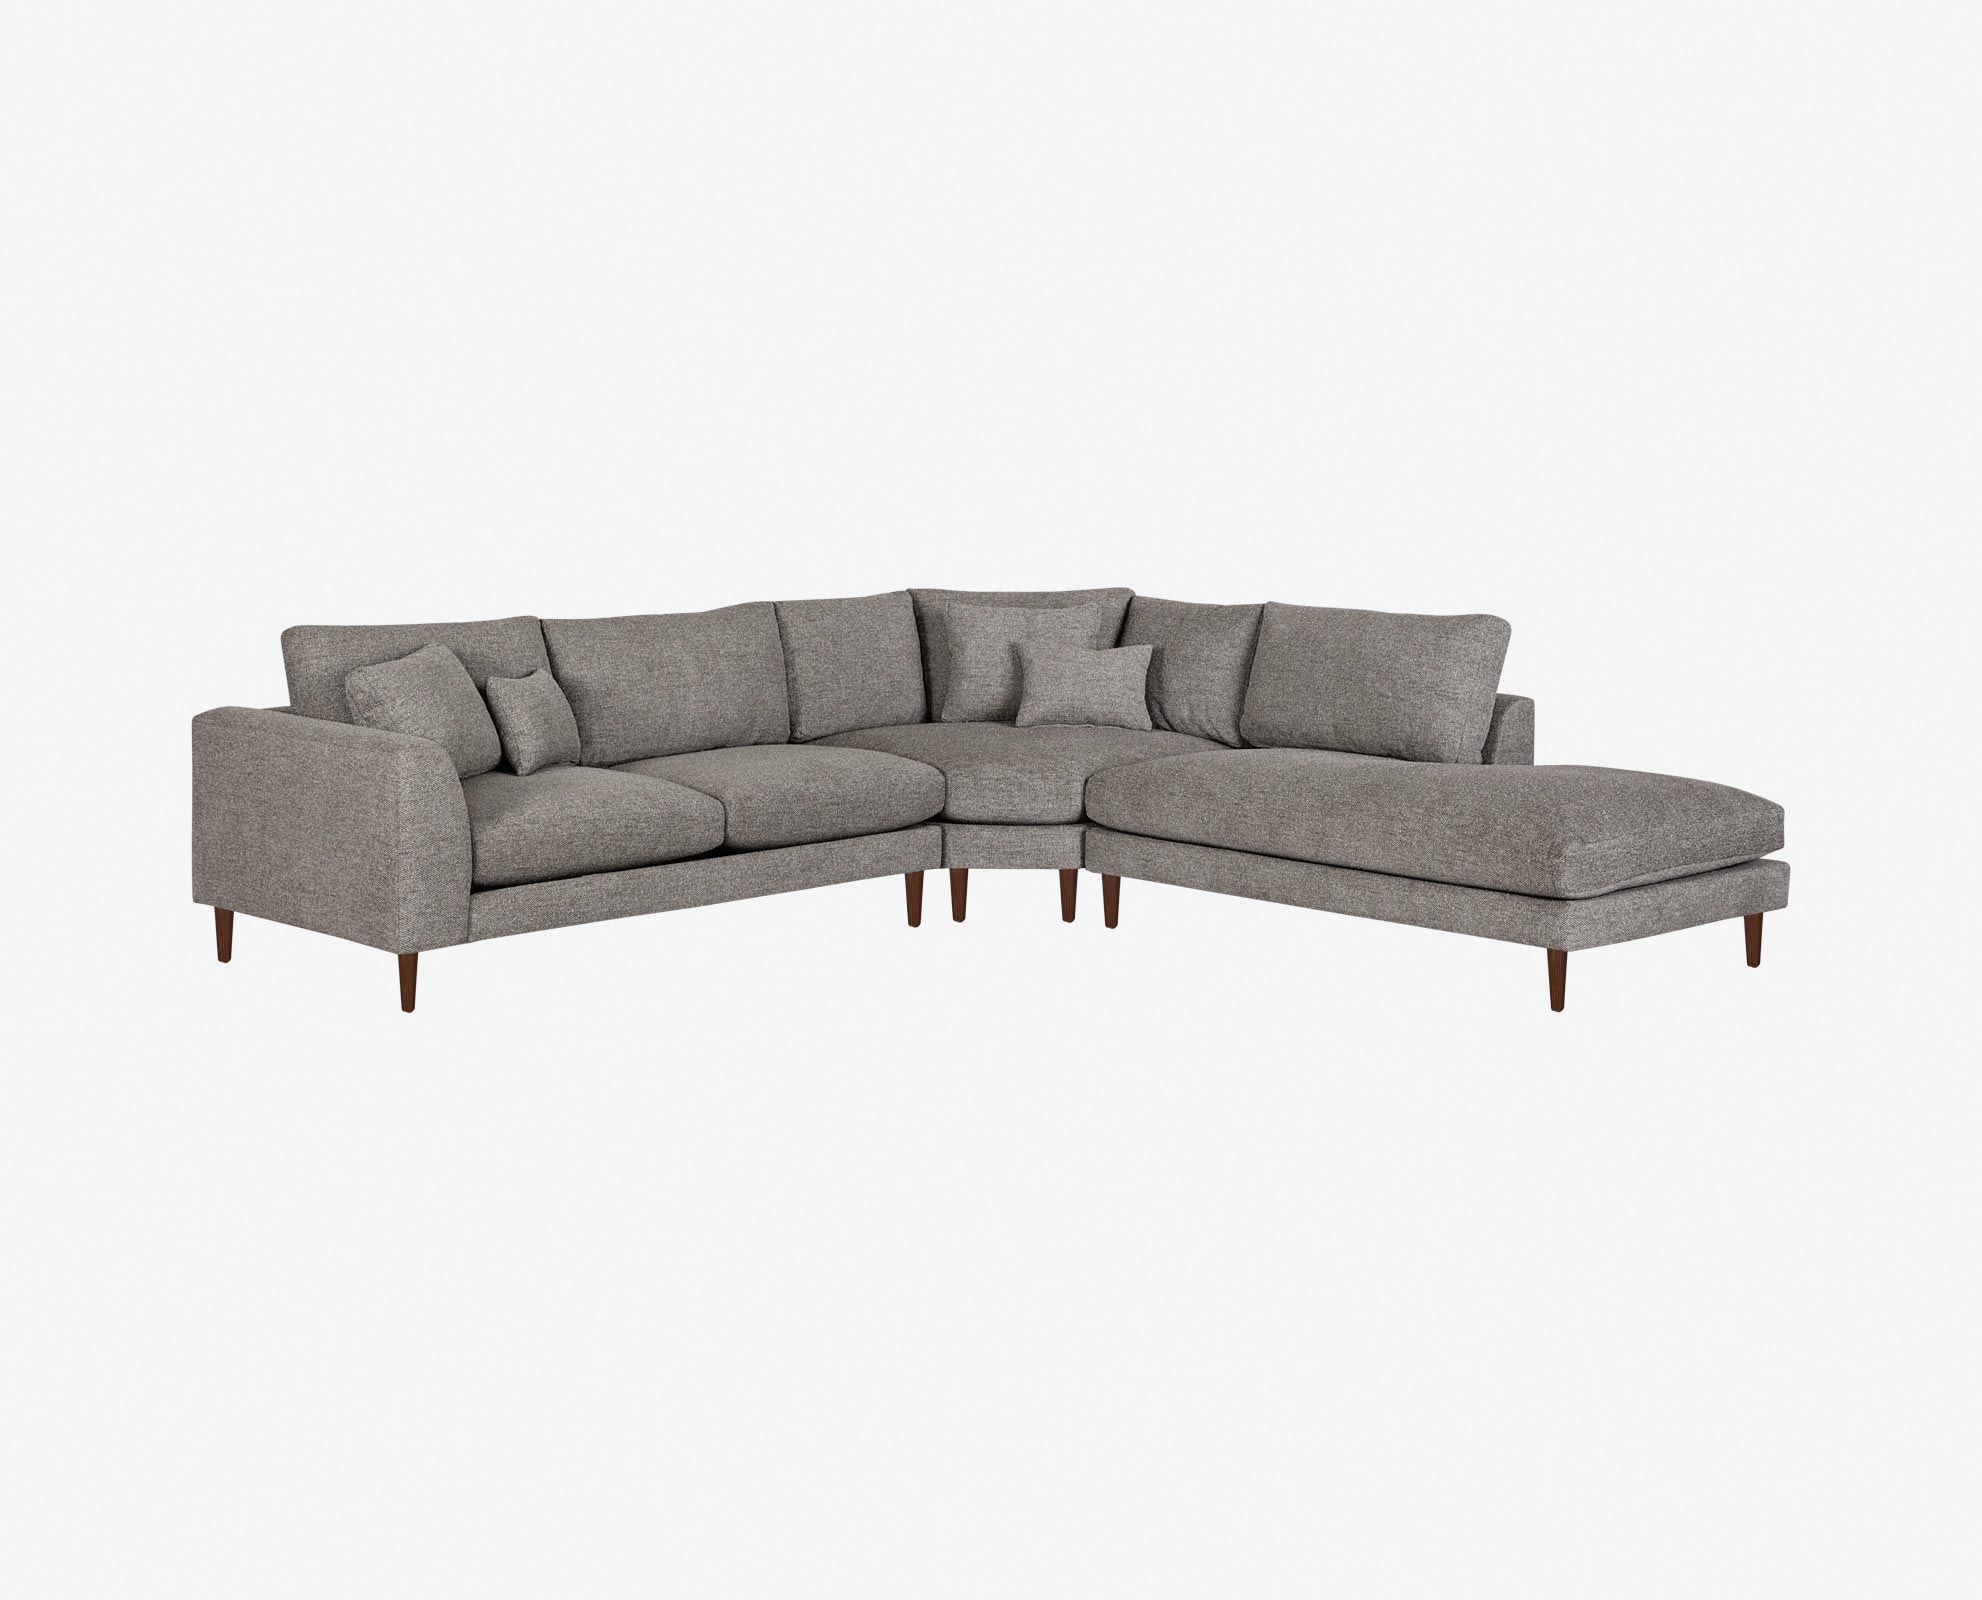 Klassische Sofas You Can Assemble Dania The Grand Hugo Sectional Is A Great Value And A Perfect